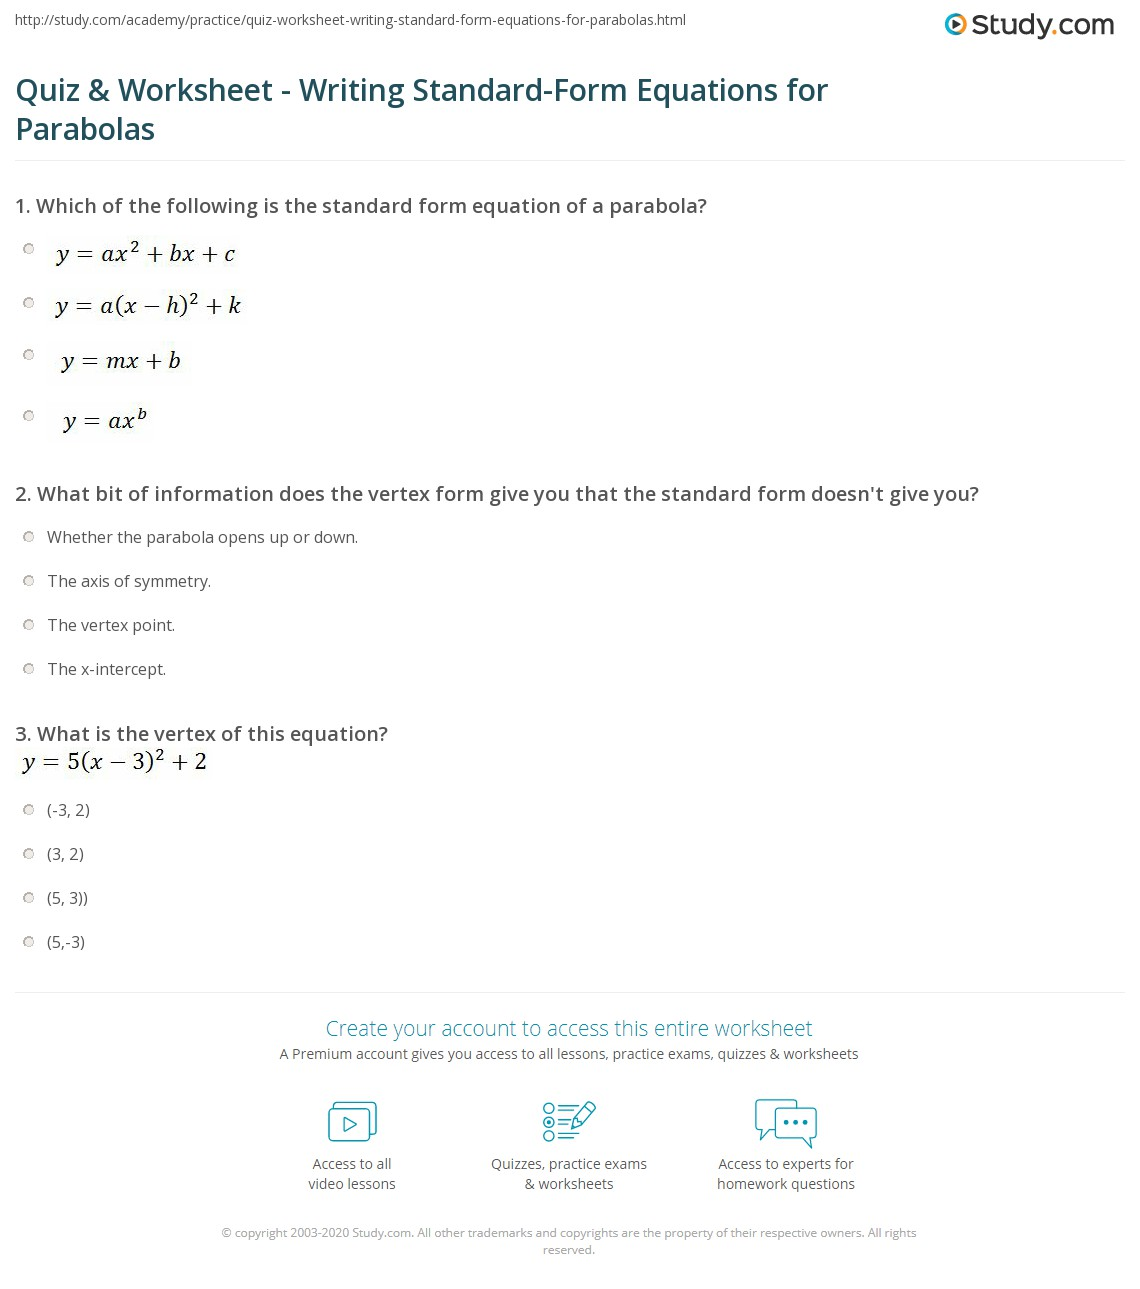 Quiz worksheet writing standard form equations for parabolas print writing standard form equations for parabolas definition explanation worksheet falaconquin